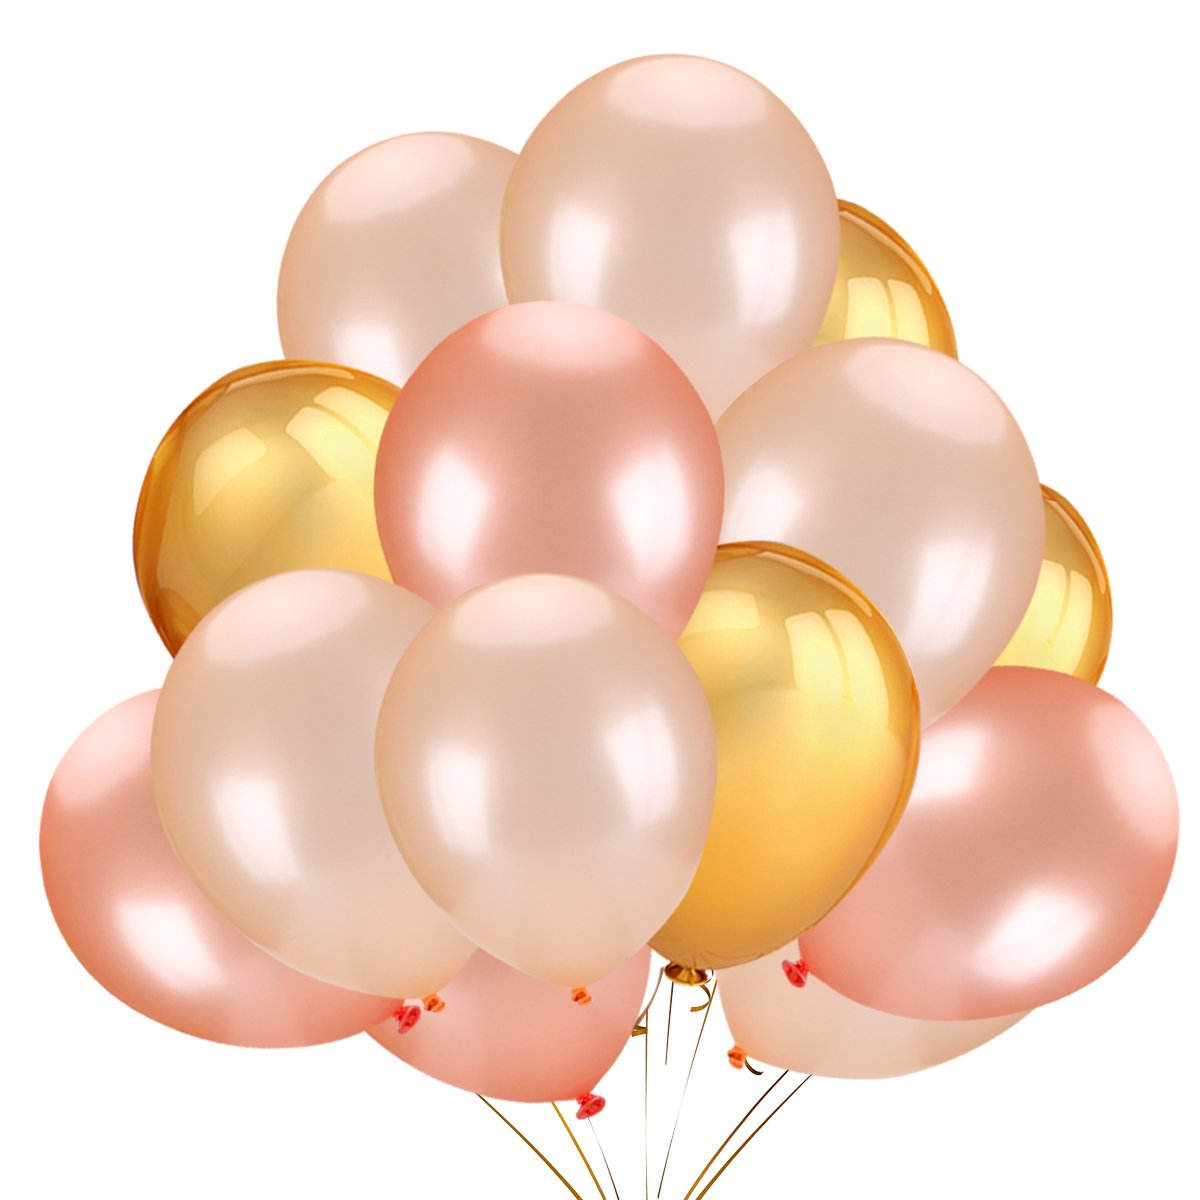 50Pcs Gold & Rose Gold & Champagne Gold Color Latex Party Balloons for Wedding Hawaii Graduation Birthday Party Decoration Supplies